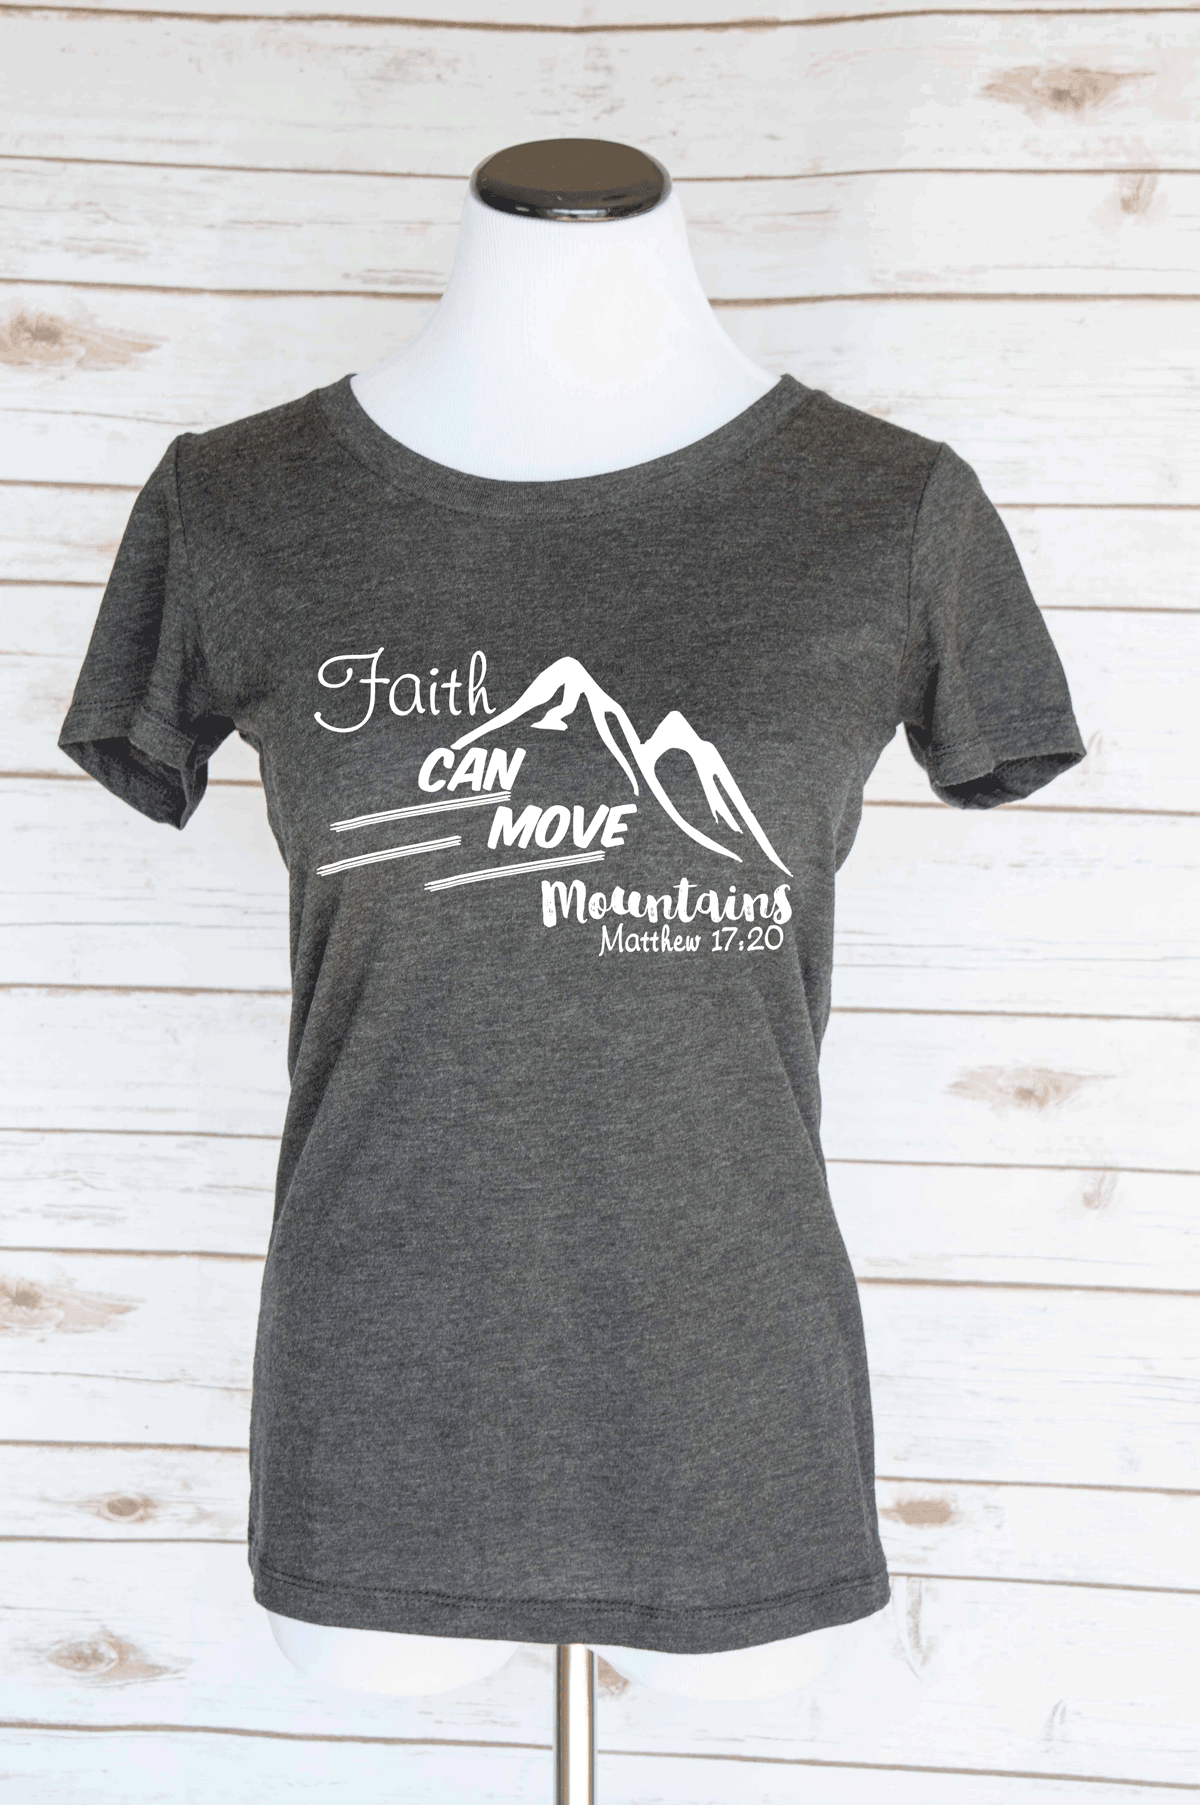 Faith Can Move Mountains Matthew 17:30 Bible Verse T-Shirt. Christian Quote. Scoop Neck Triblend Tee.